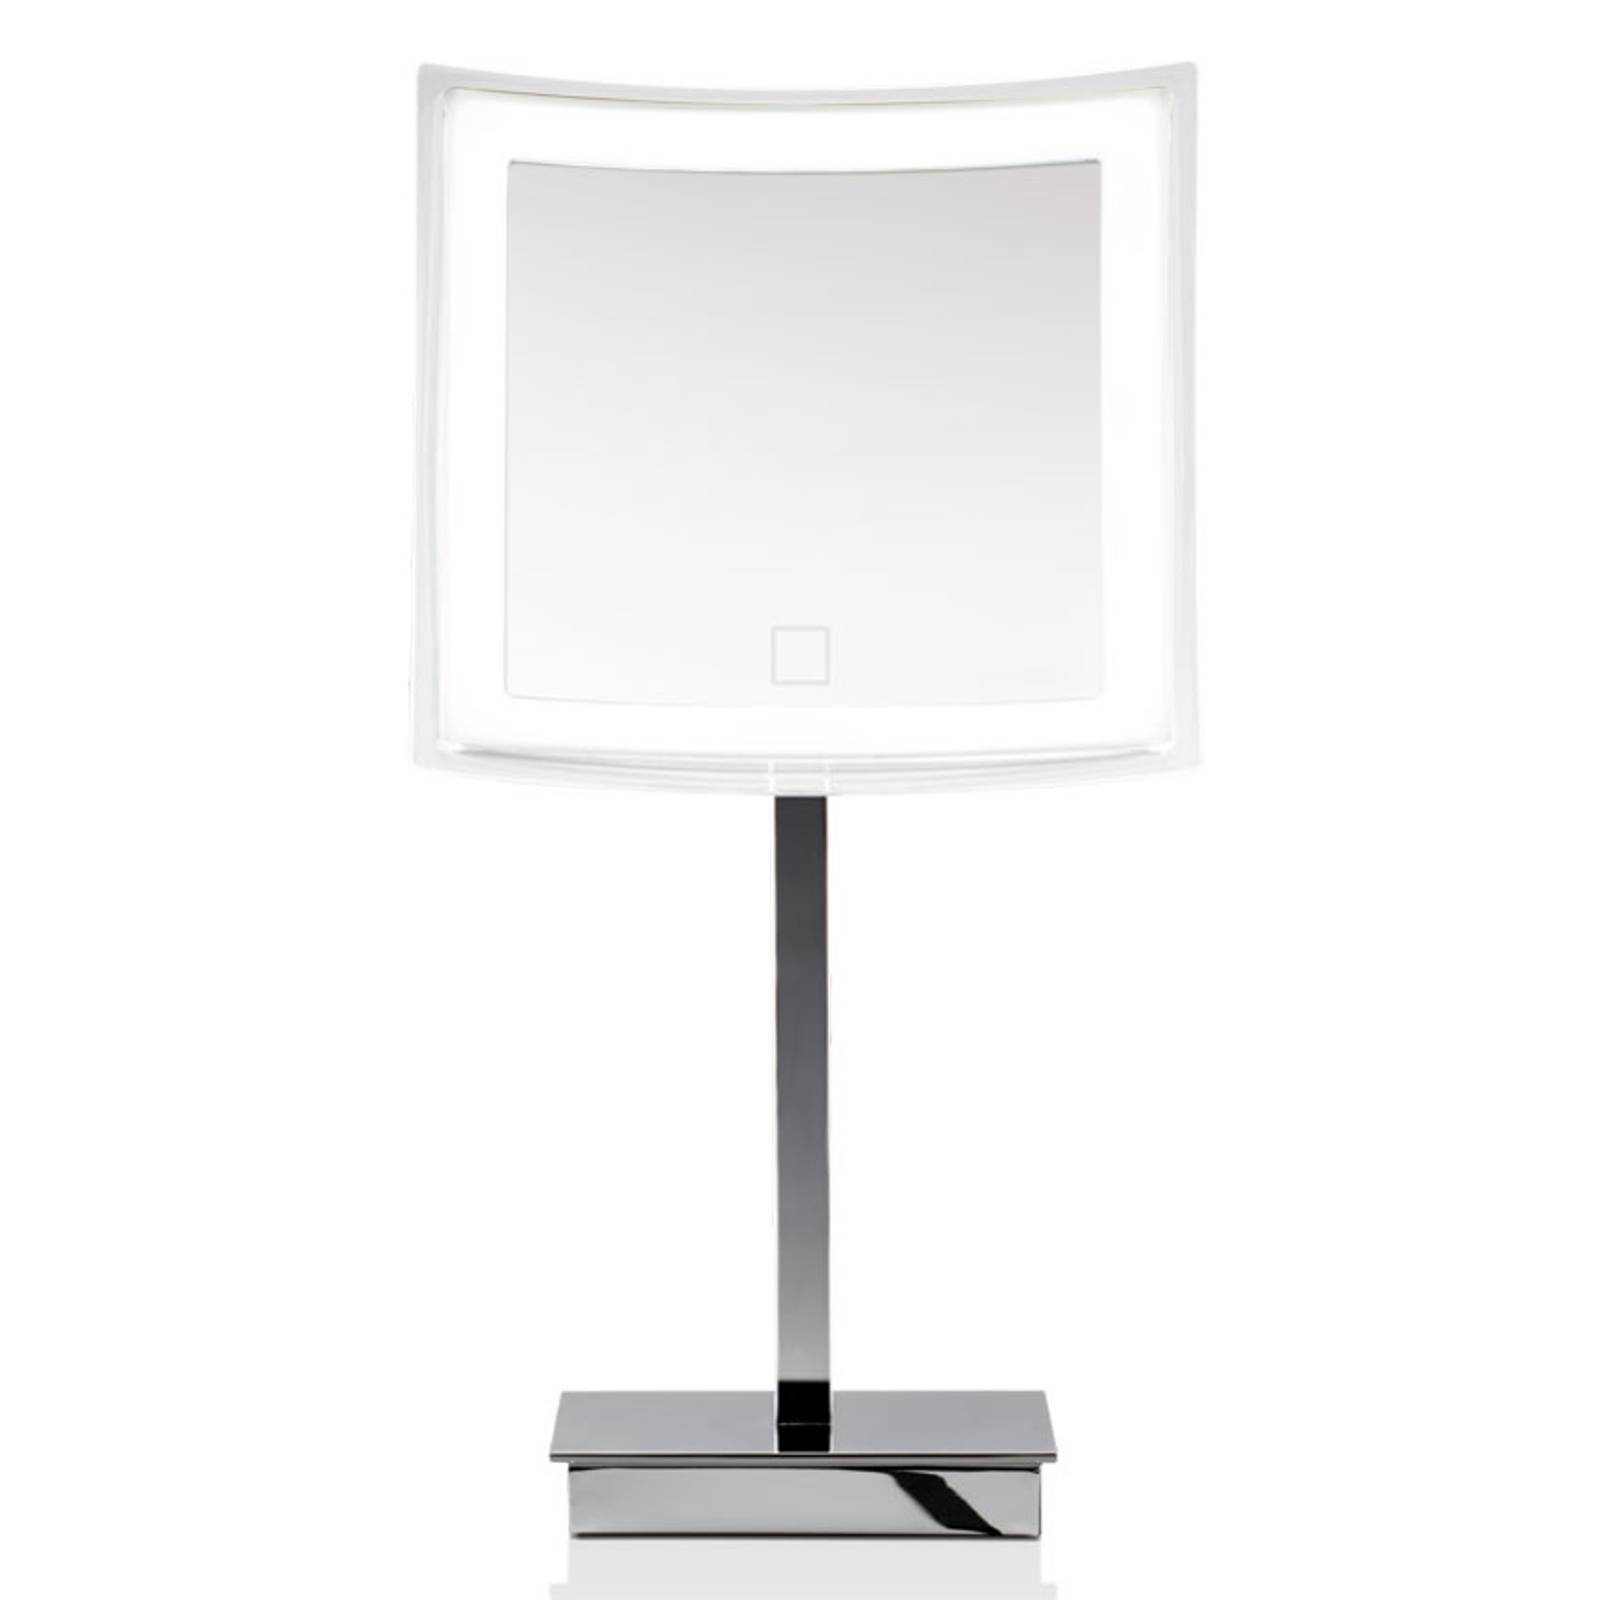 Decor Walther BS 83 Touch LED table mirror angular